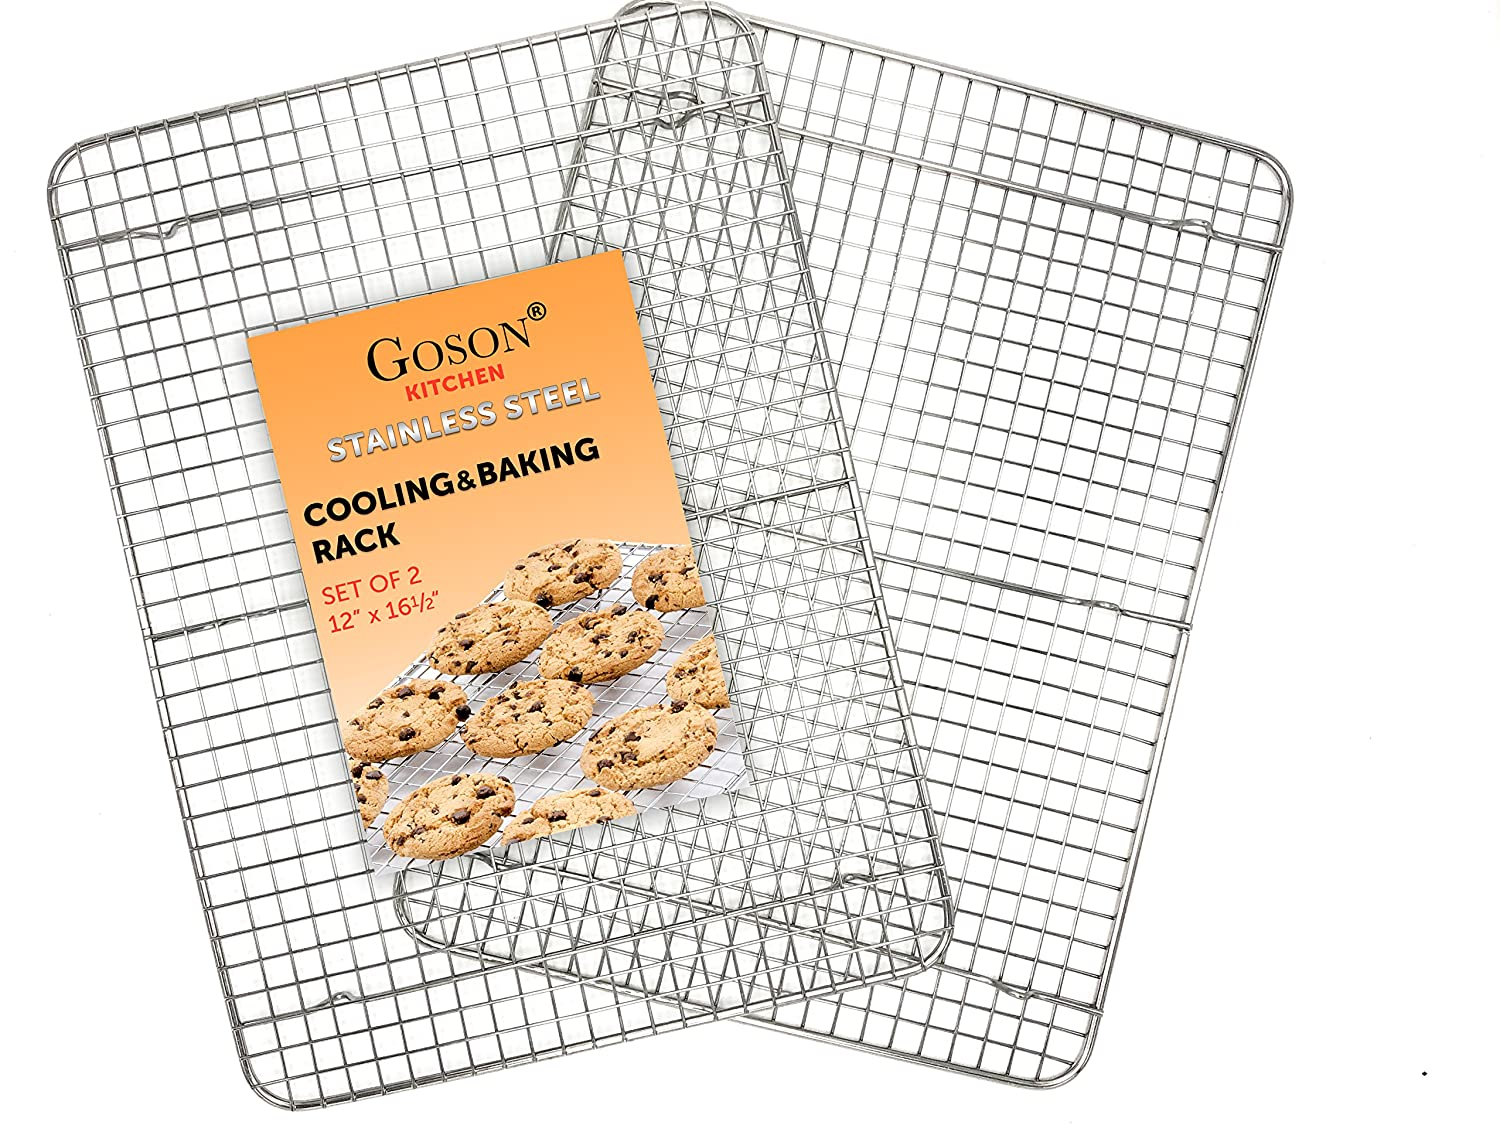 "Goson Kitchen Stainless Steel Heavy Duty Metal Wire Cooling, Cooking, Baking Rack For Baking Sheet, Oven Safe up to 575F, Dishwasher Safe Rust Free | 12""x16""; SET OF 2"